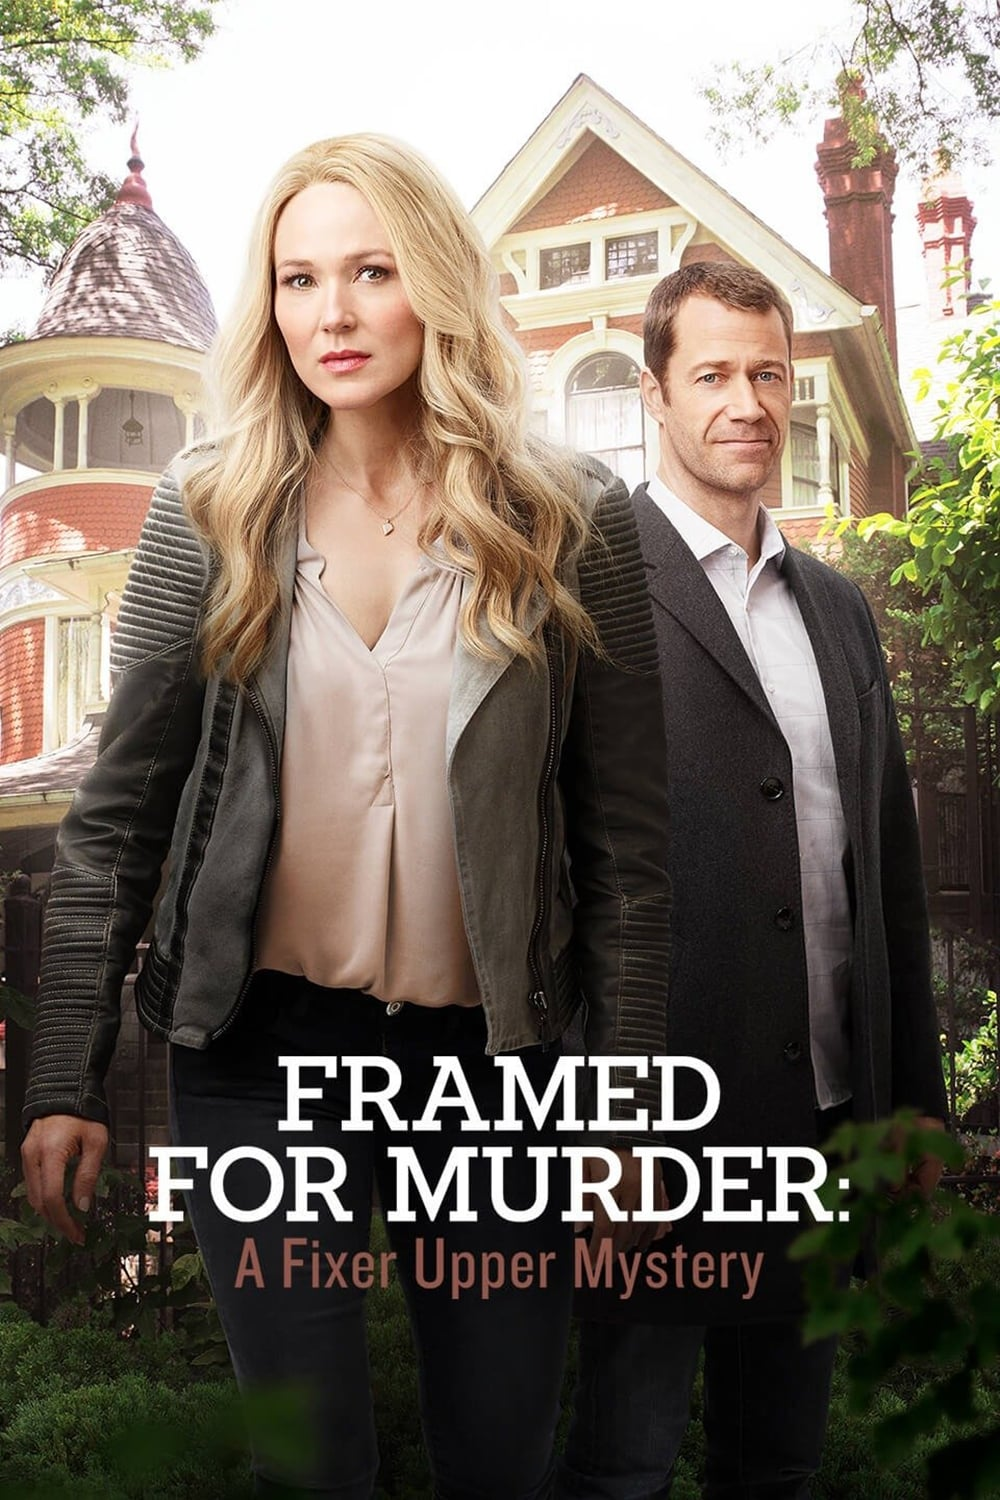 Framed for Murder: A Fixer Upper Mystery (2017)